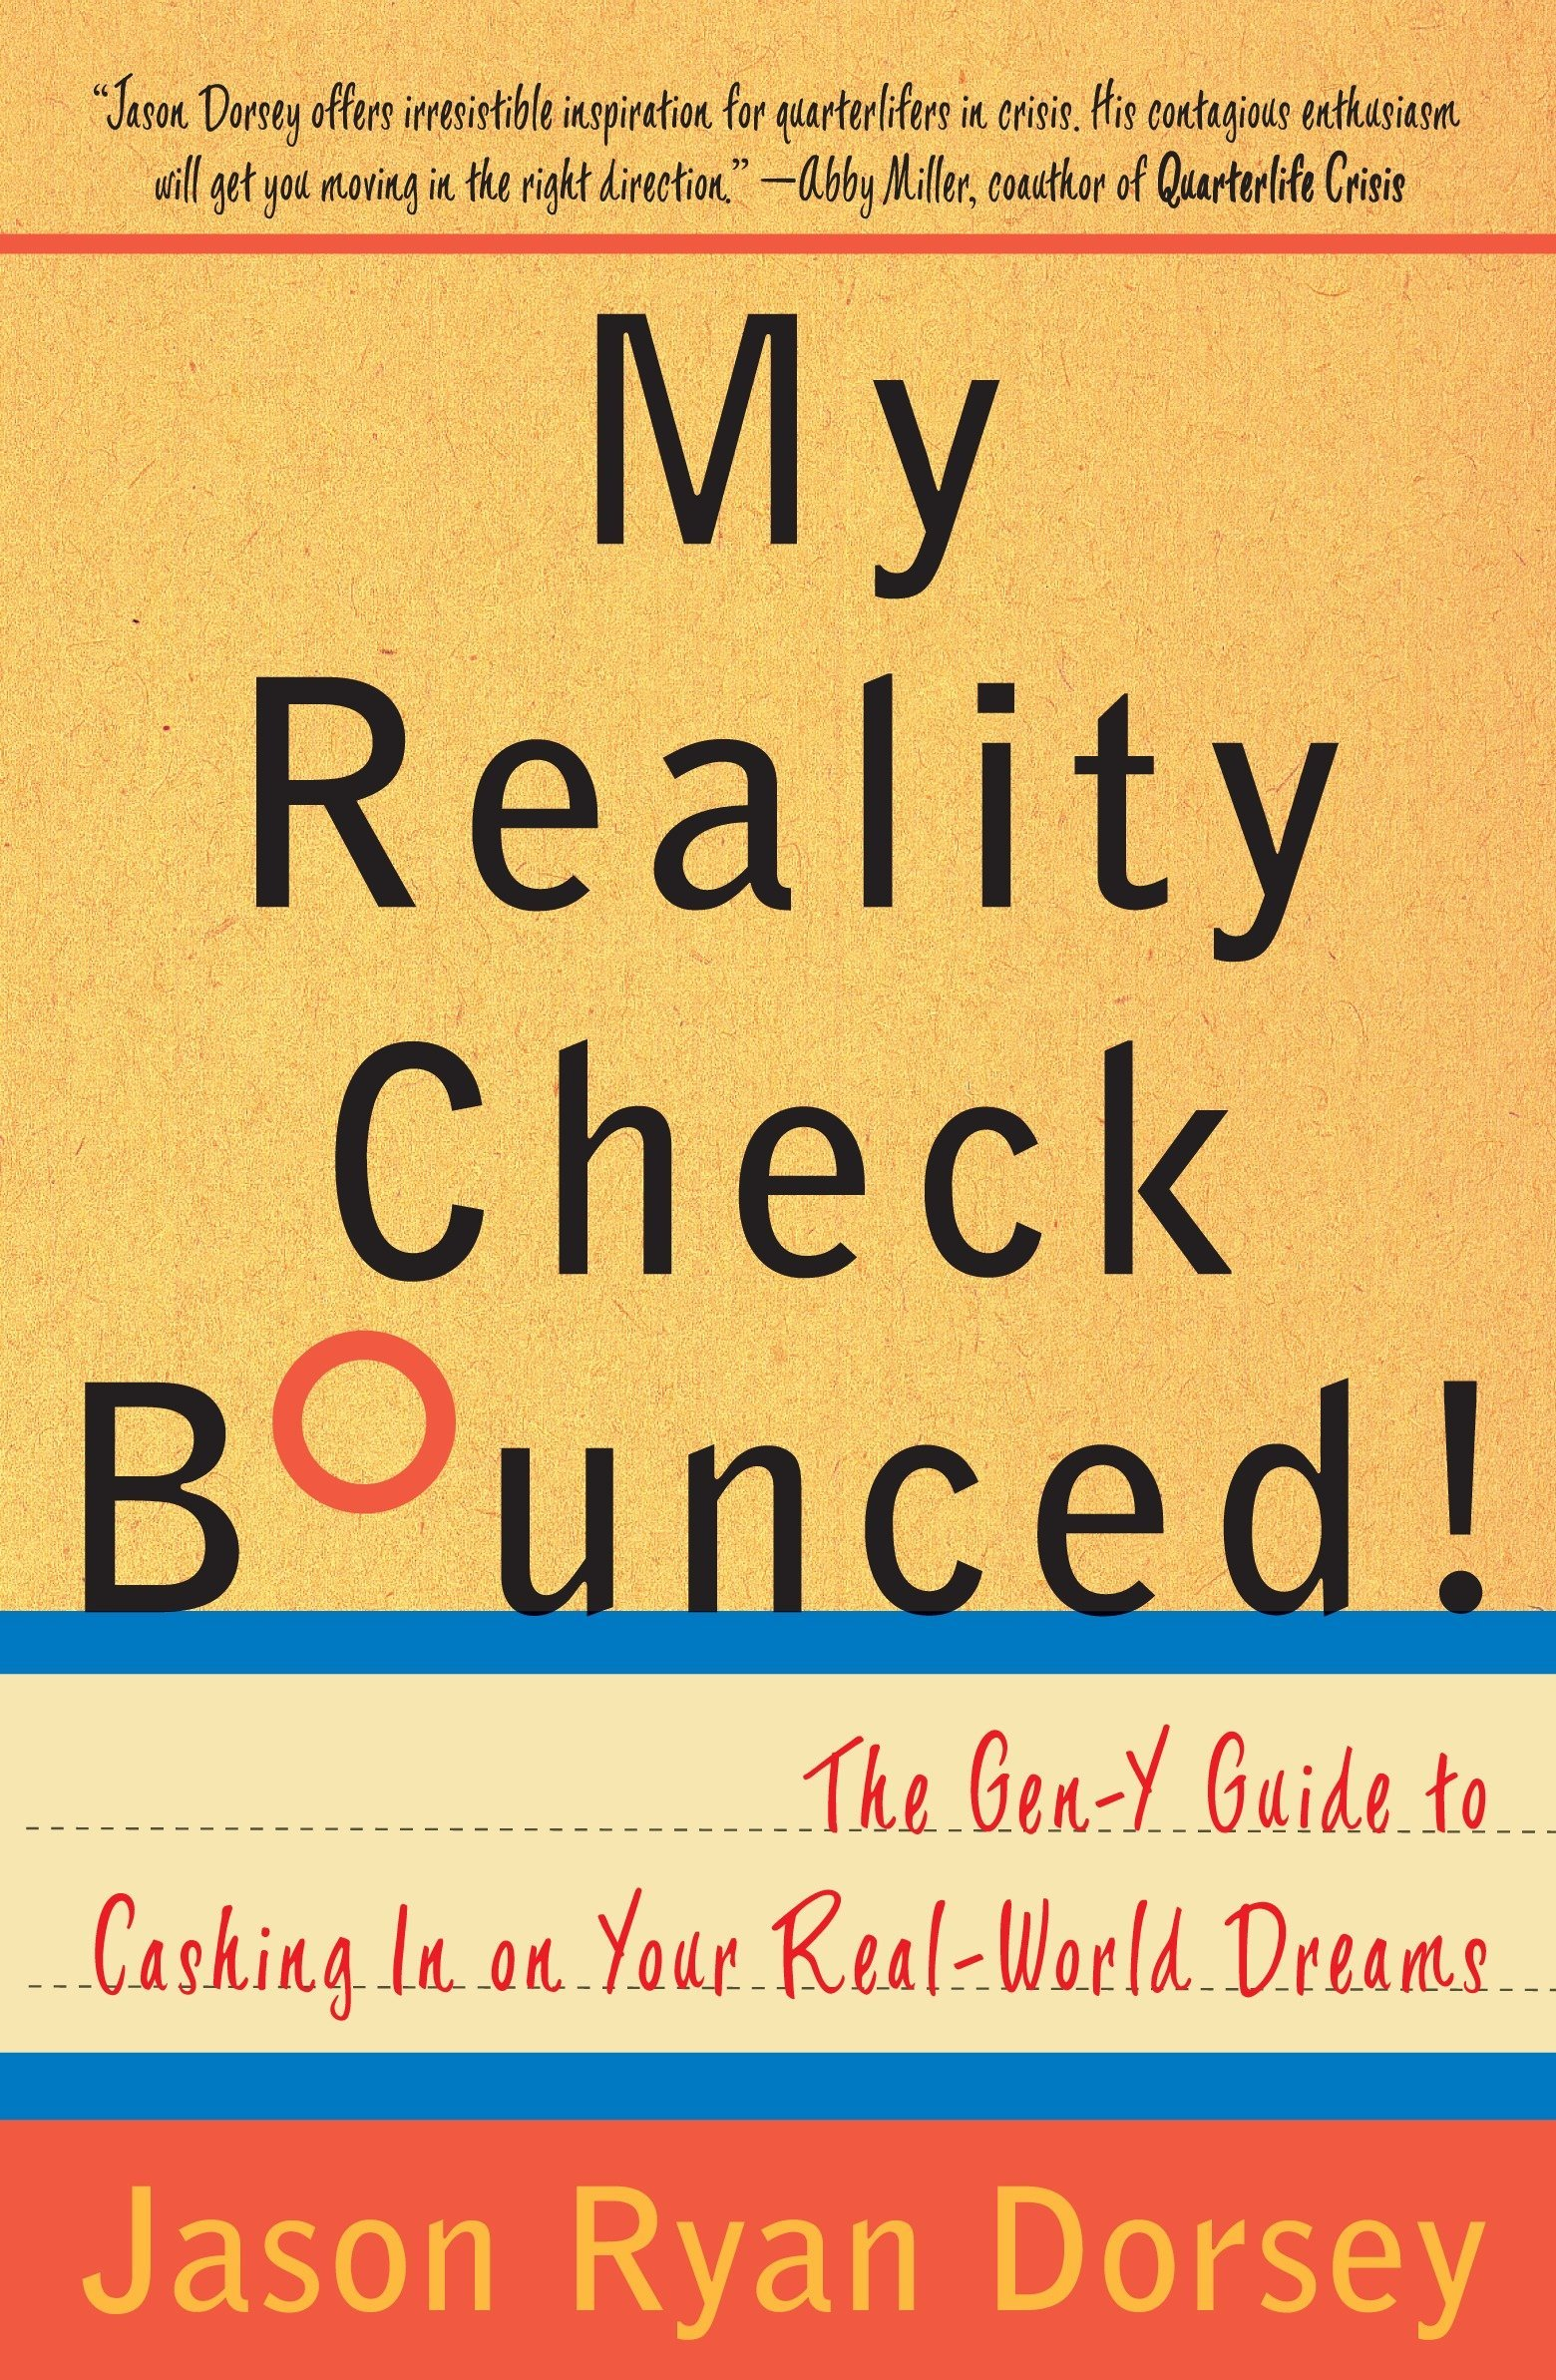 My Reality Check Bounced! The Twentysomething's Guide to Cashing in on Your  Real-World Dreams: Jason Ryan Dorsey: 9780767921831: Amazon.com: Books